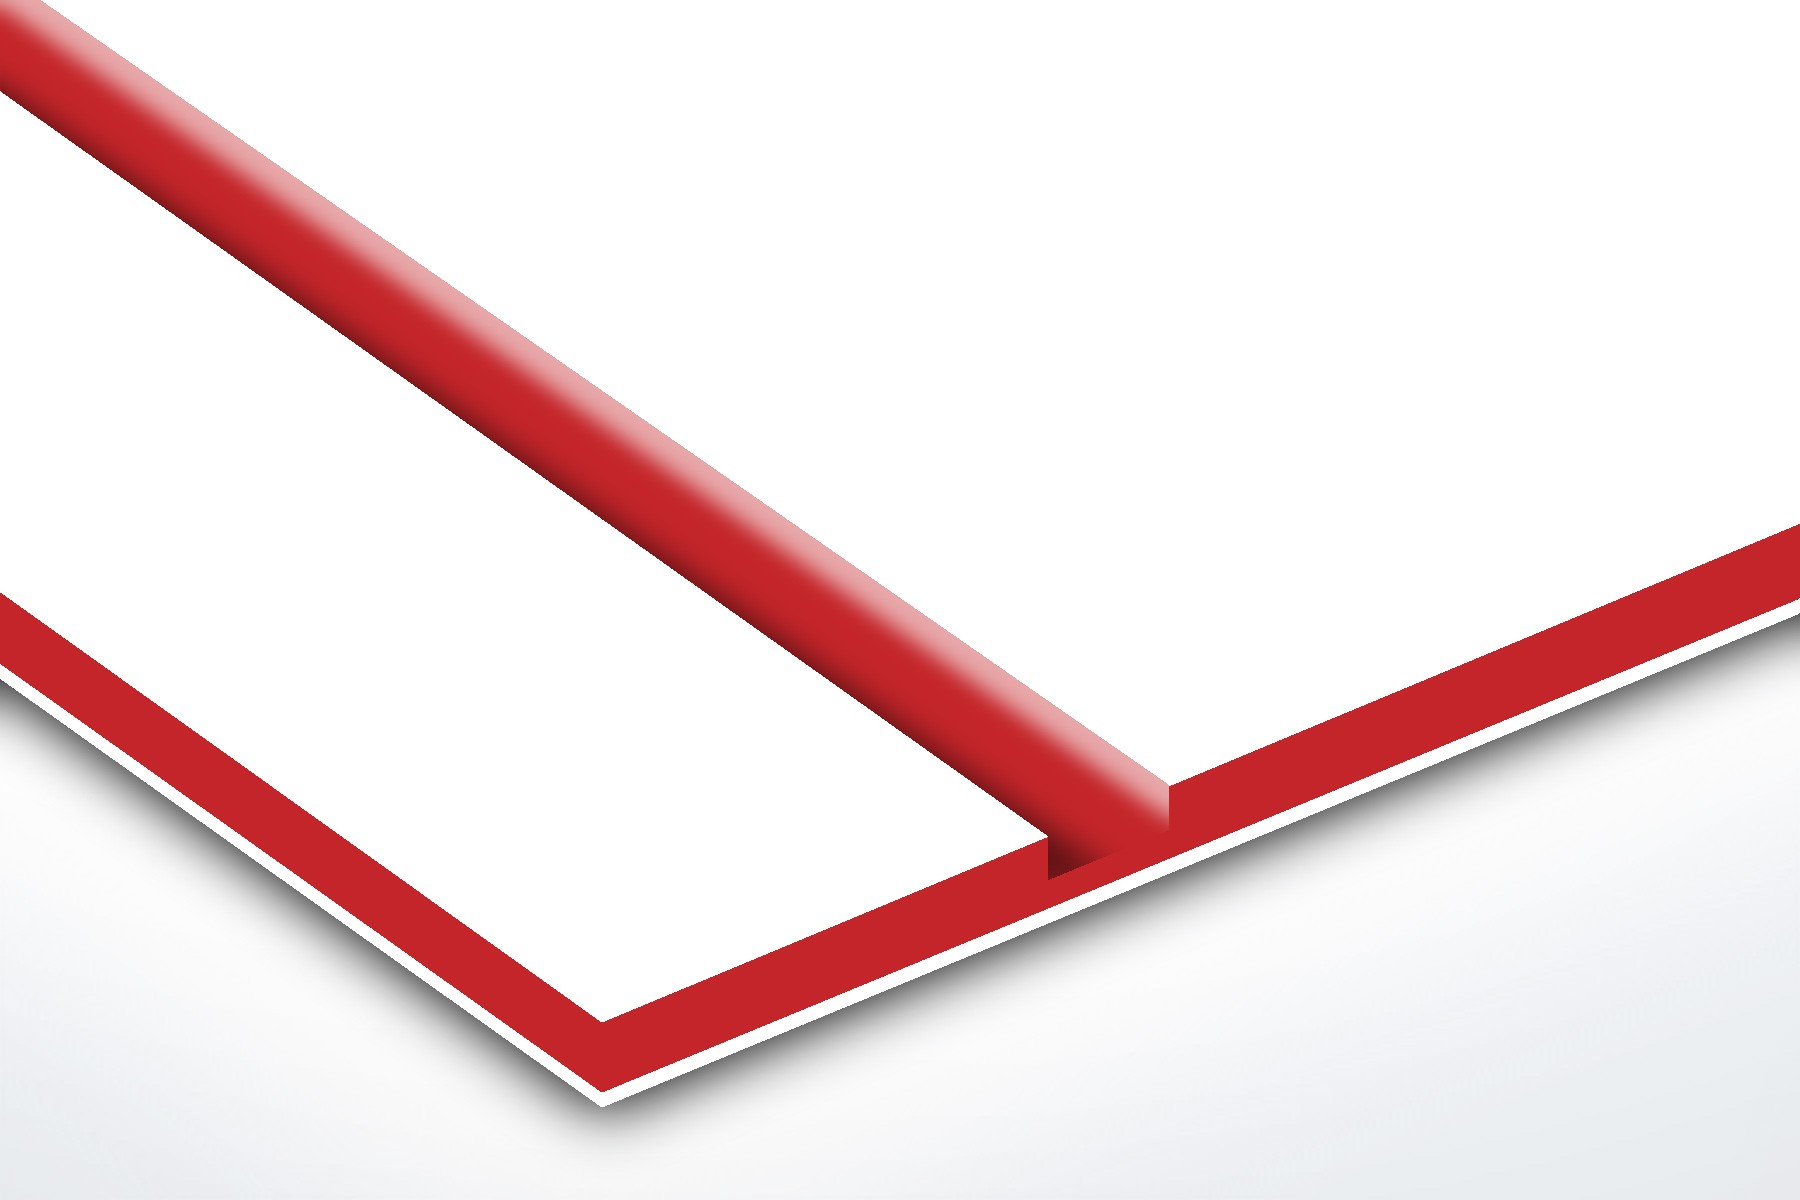 TroPly HiGloss, White/Red, 2ply, 3.2 mm